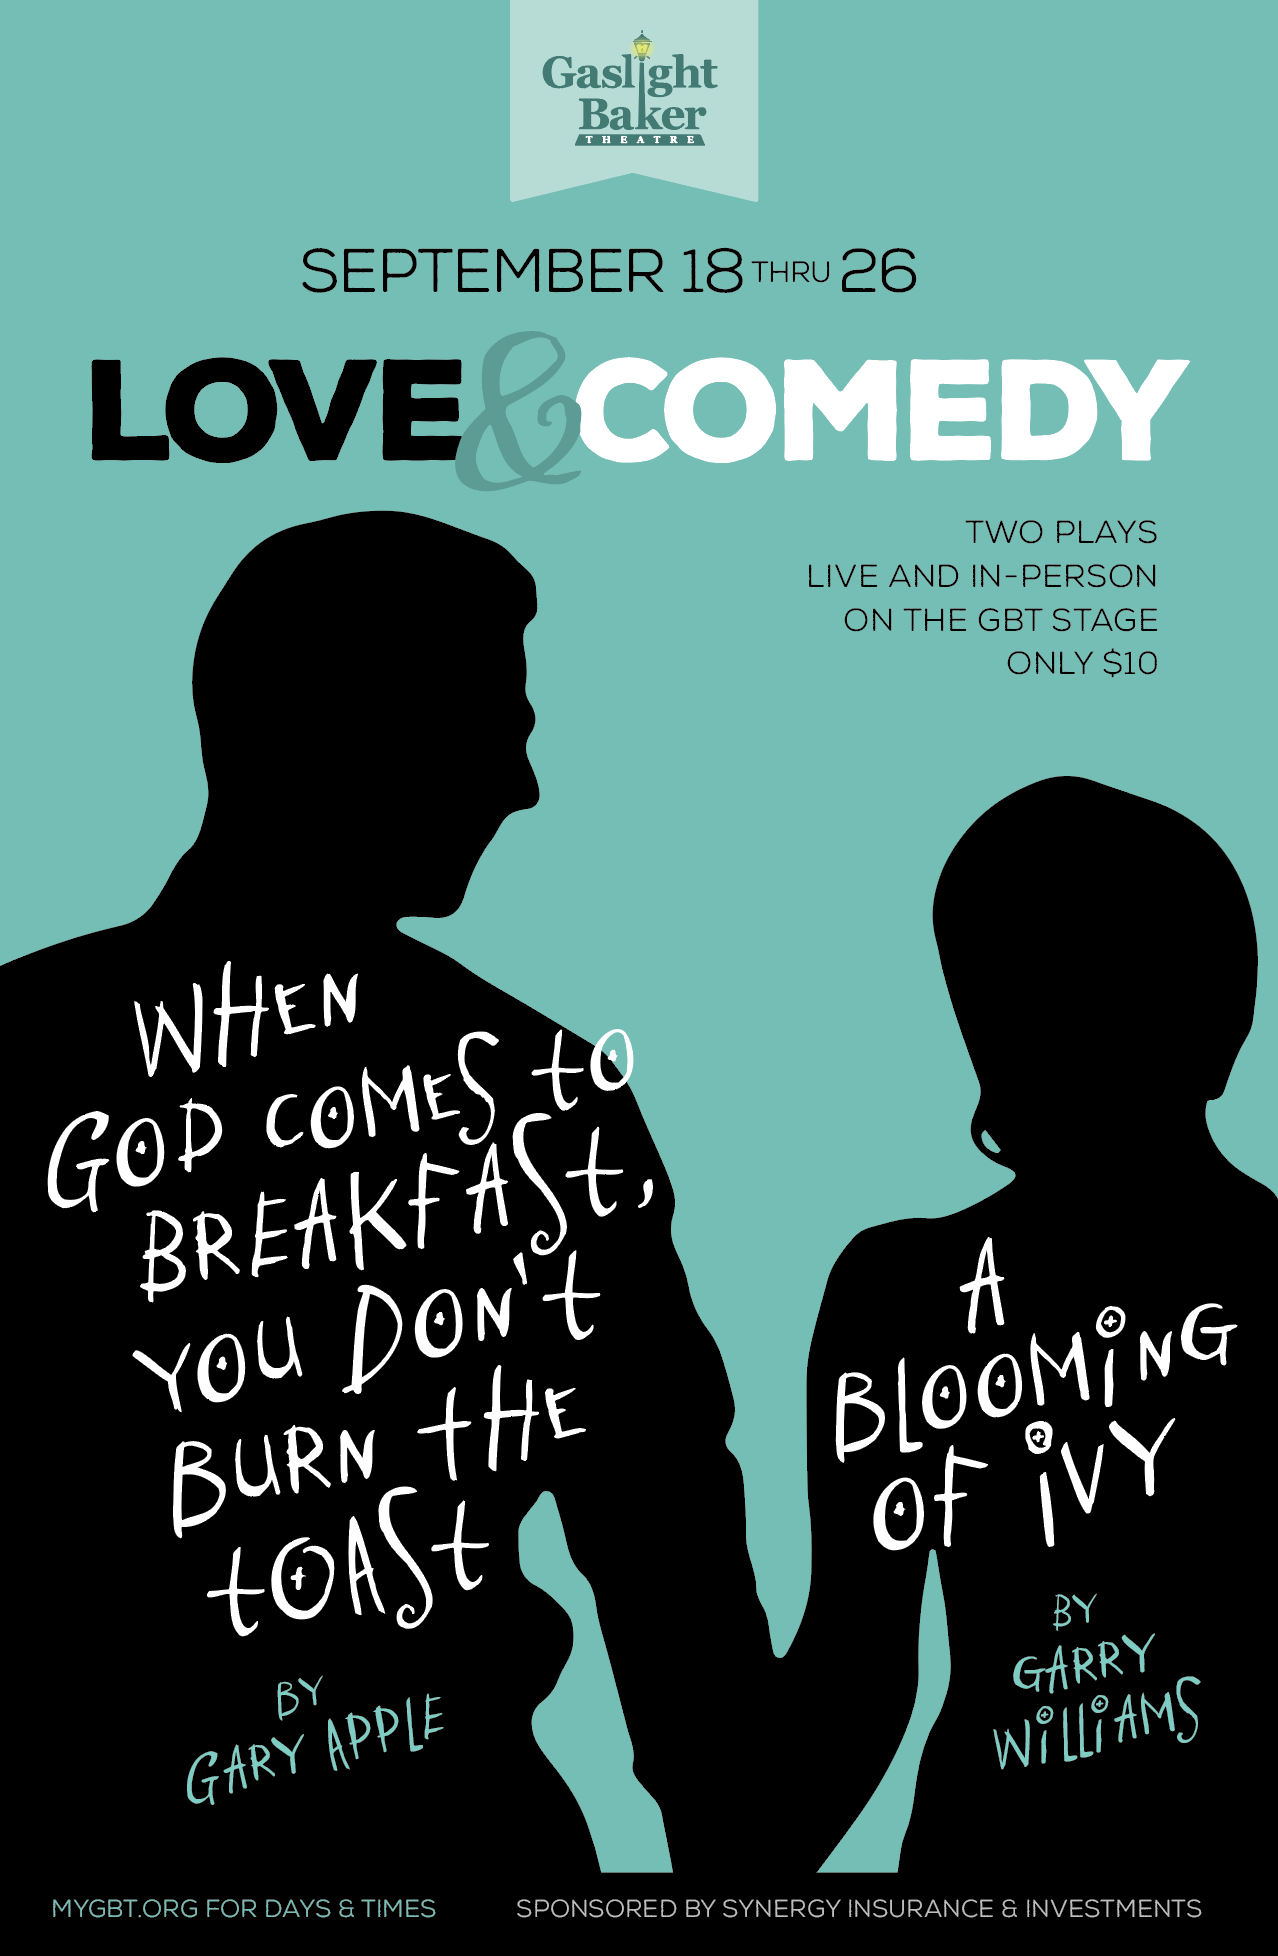 Love & Comedy - Two One-Act Plays by Gaslight Baker Theatre